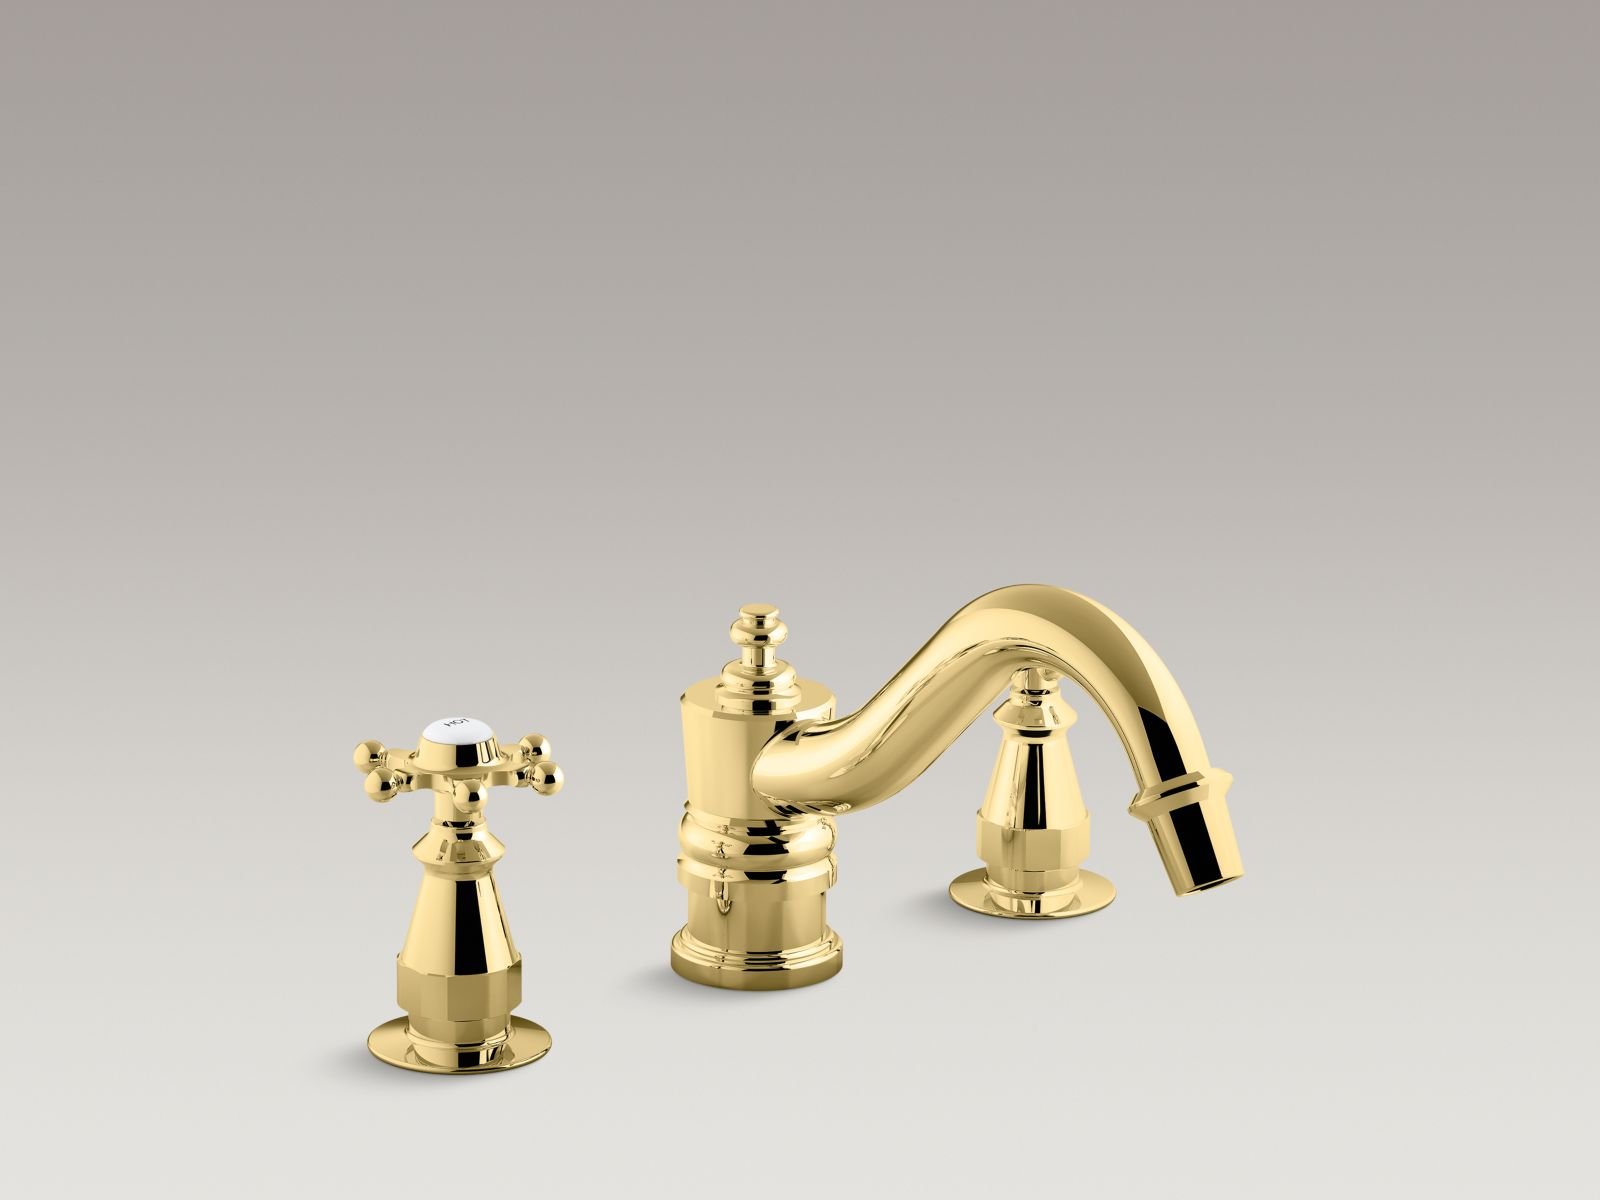 Kohler Antique K-T125-3-PB Bath faucet trim for deck-mount high-flow valve with 6-prong handles, valve not included Vibrant Polished Brass